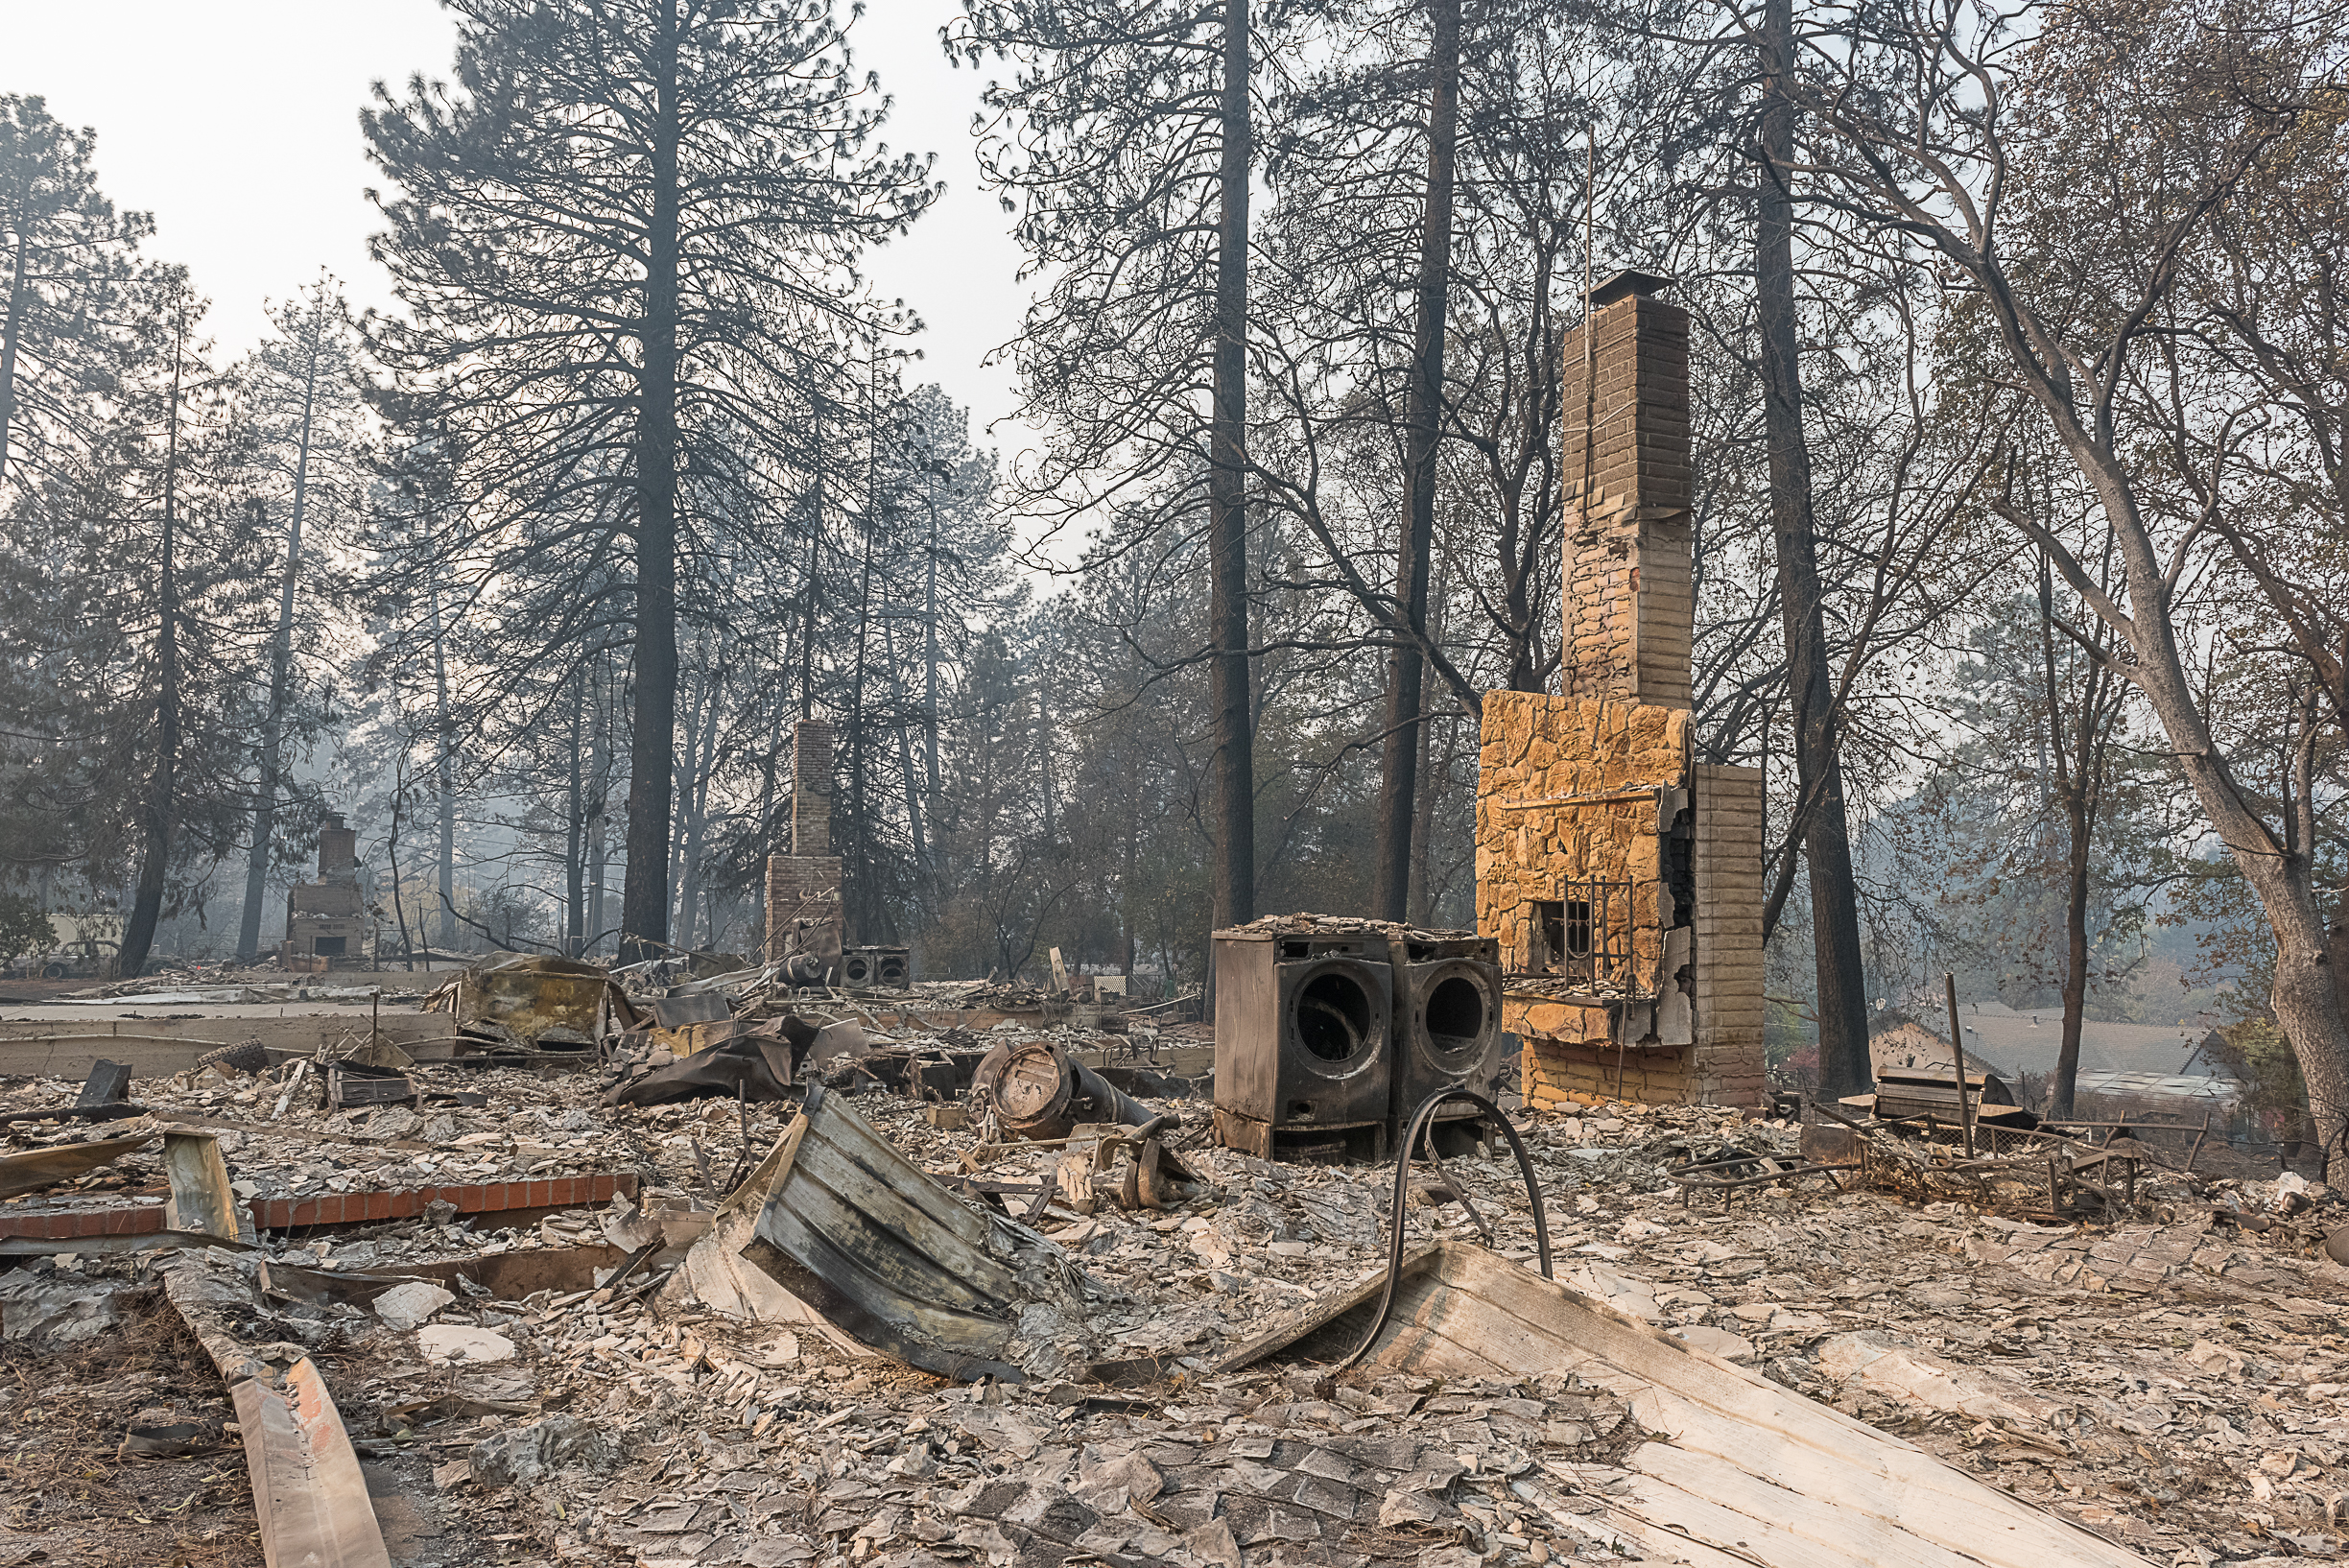 The destructive aftermath of the deadliest wildfire in California history, which struck the Northern California city of Paradise. Photo was taken Nov. 16, 2018.